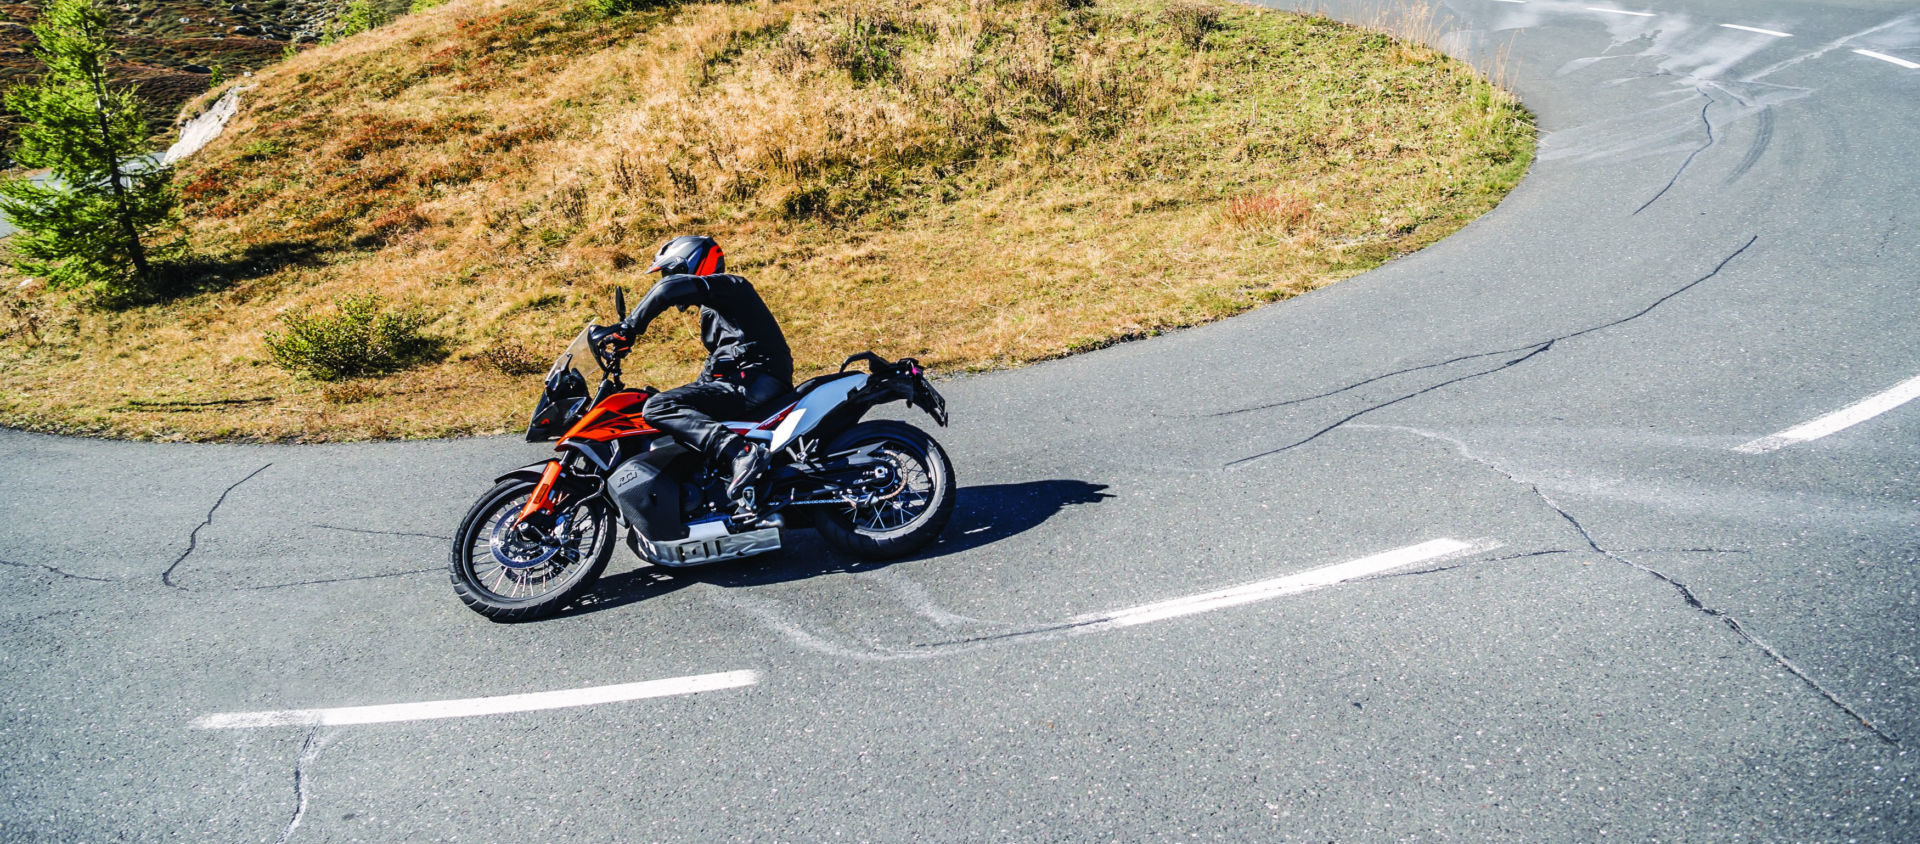 A KTM 790 Adventure at speed. Photo courtesy of KTM North America.